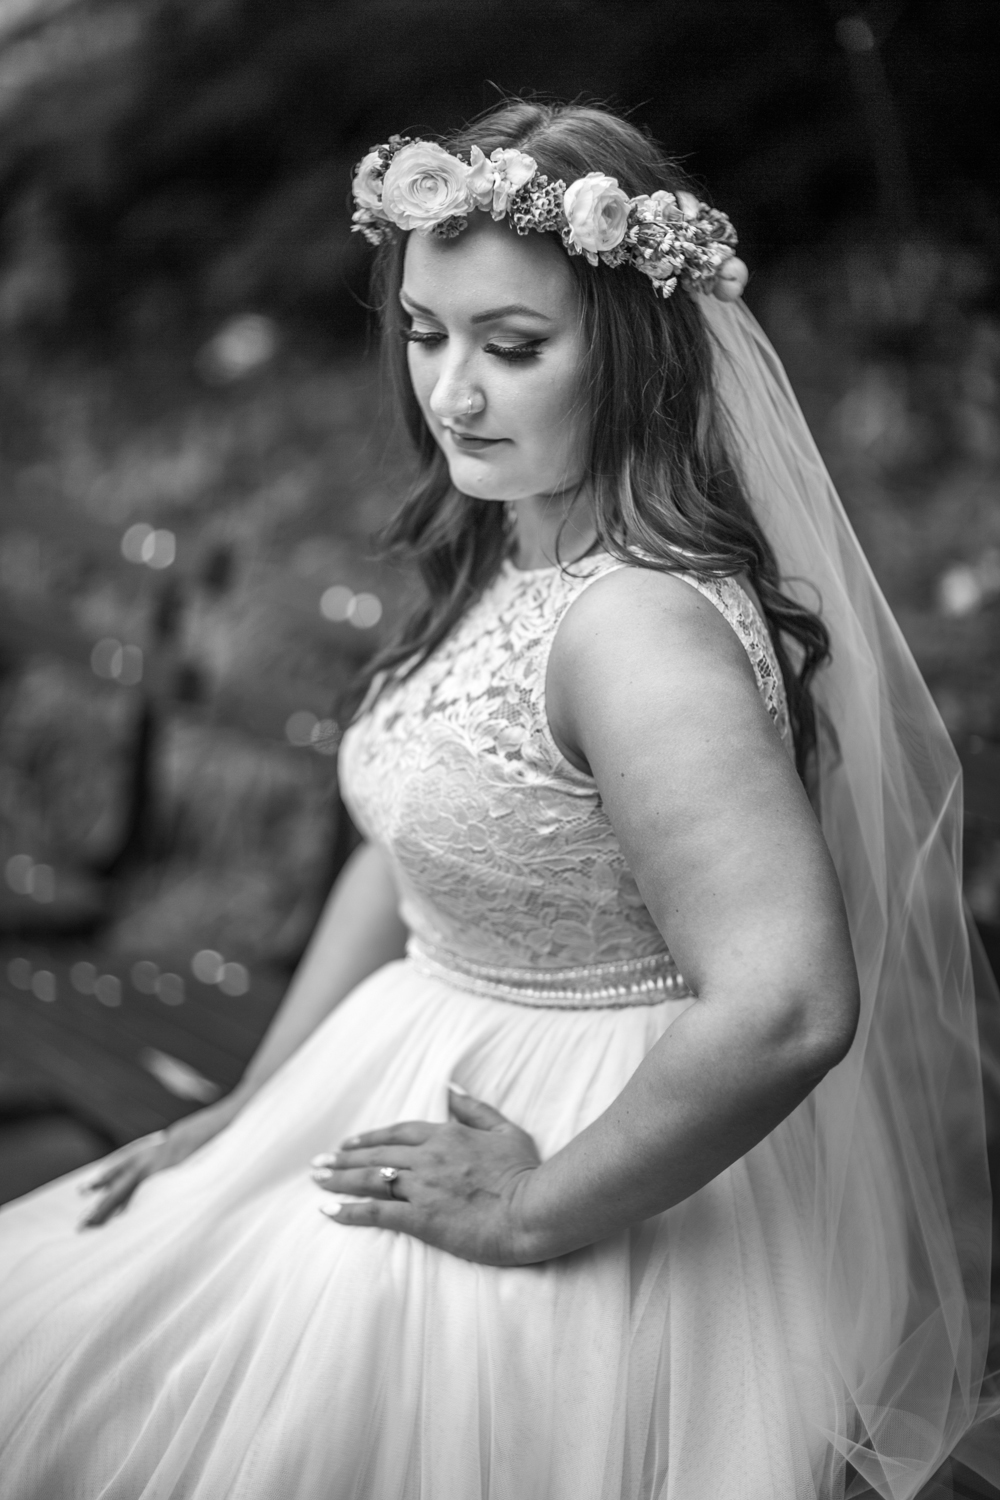 Wedding Photography by Amber Marlow